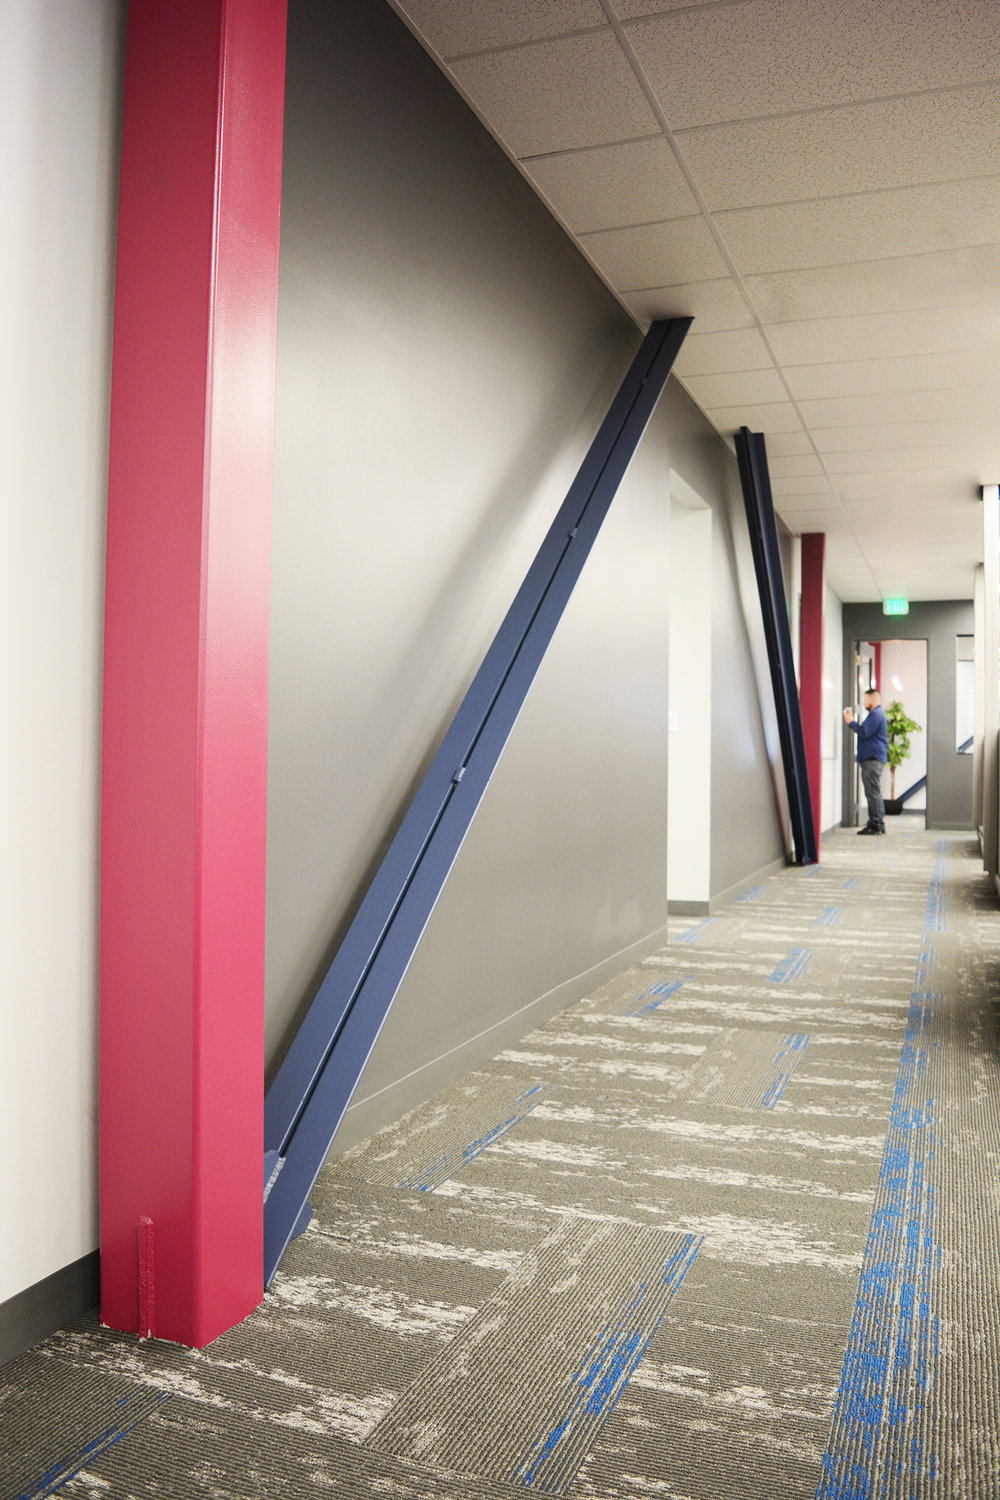 Throughout the office space structural columns and bracing were left exposed and branded with Alpha's colors. The diagonal lines of the bracing and high chroma colors created a more engaging and dynamic space.